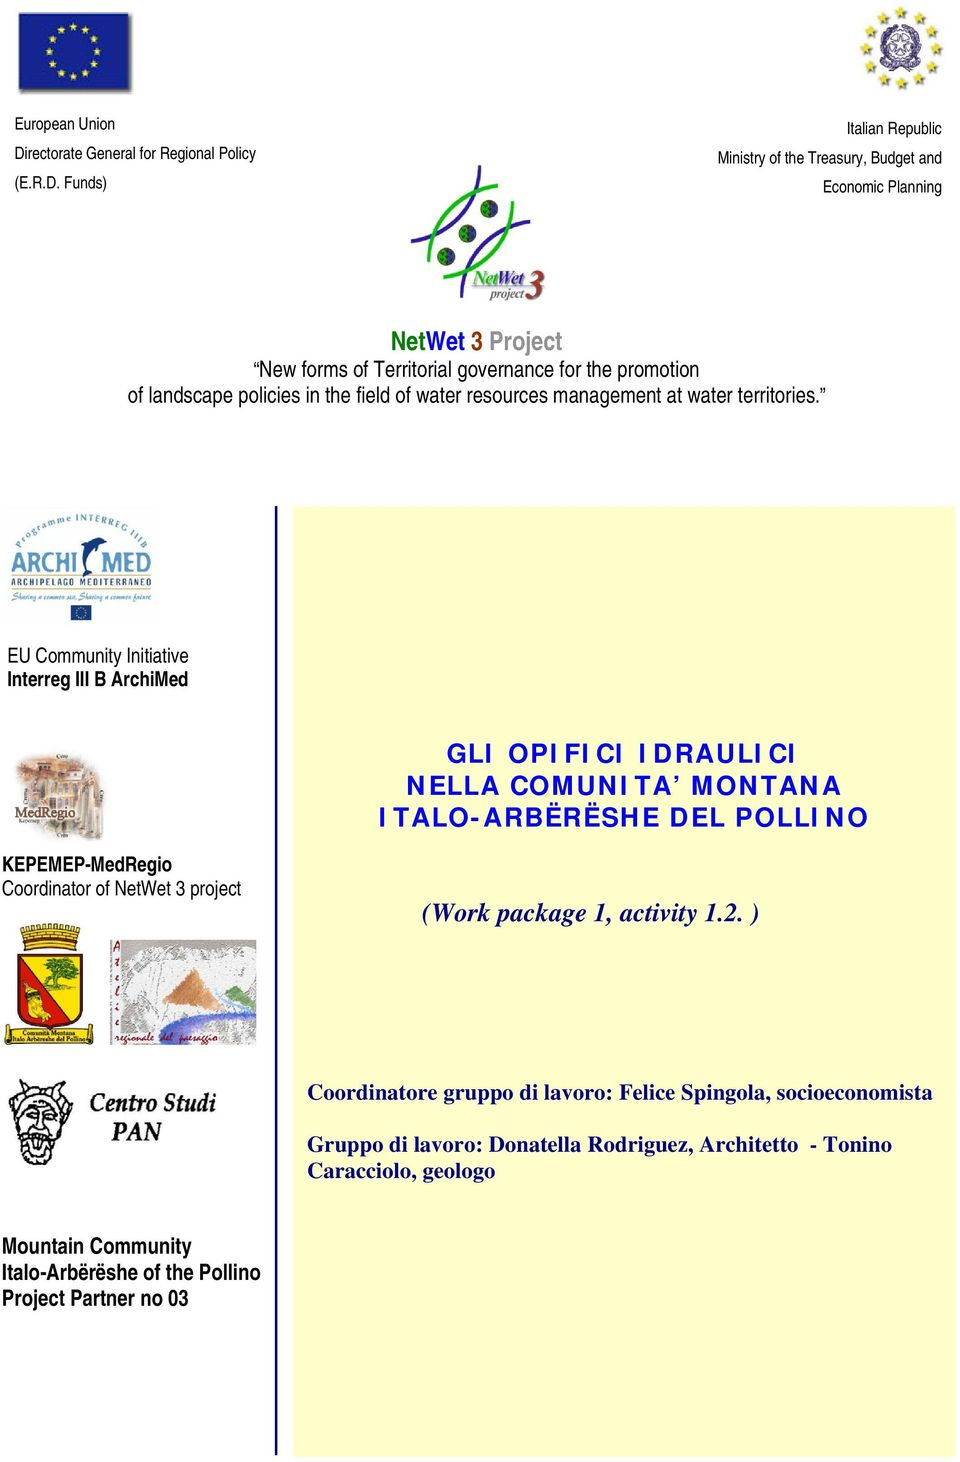 Funds) Italian Republic Ministry of the Treasury, Budget and Economic Planning NetWet 3 Project New forms of Territorial governance for the promotion of landscape policies in the